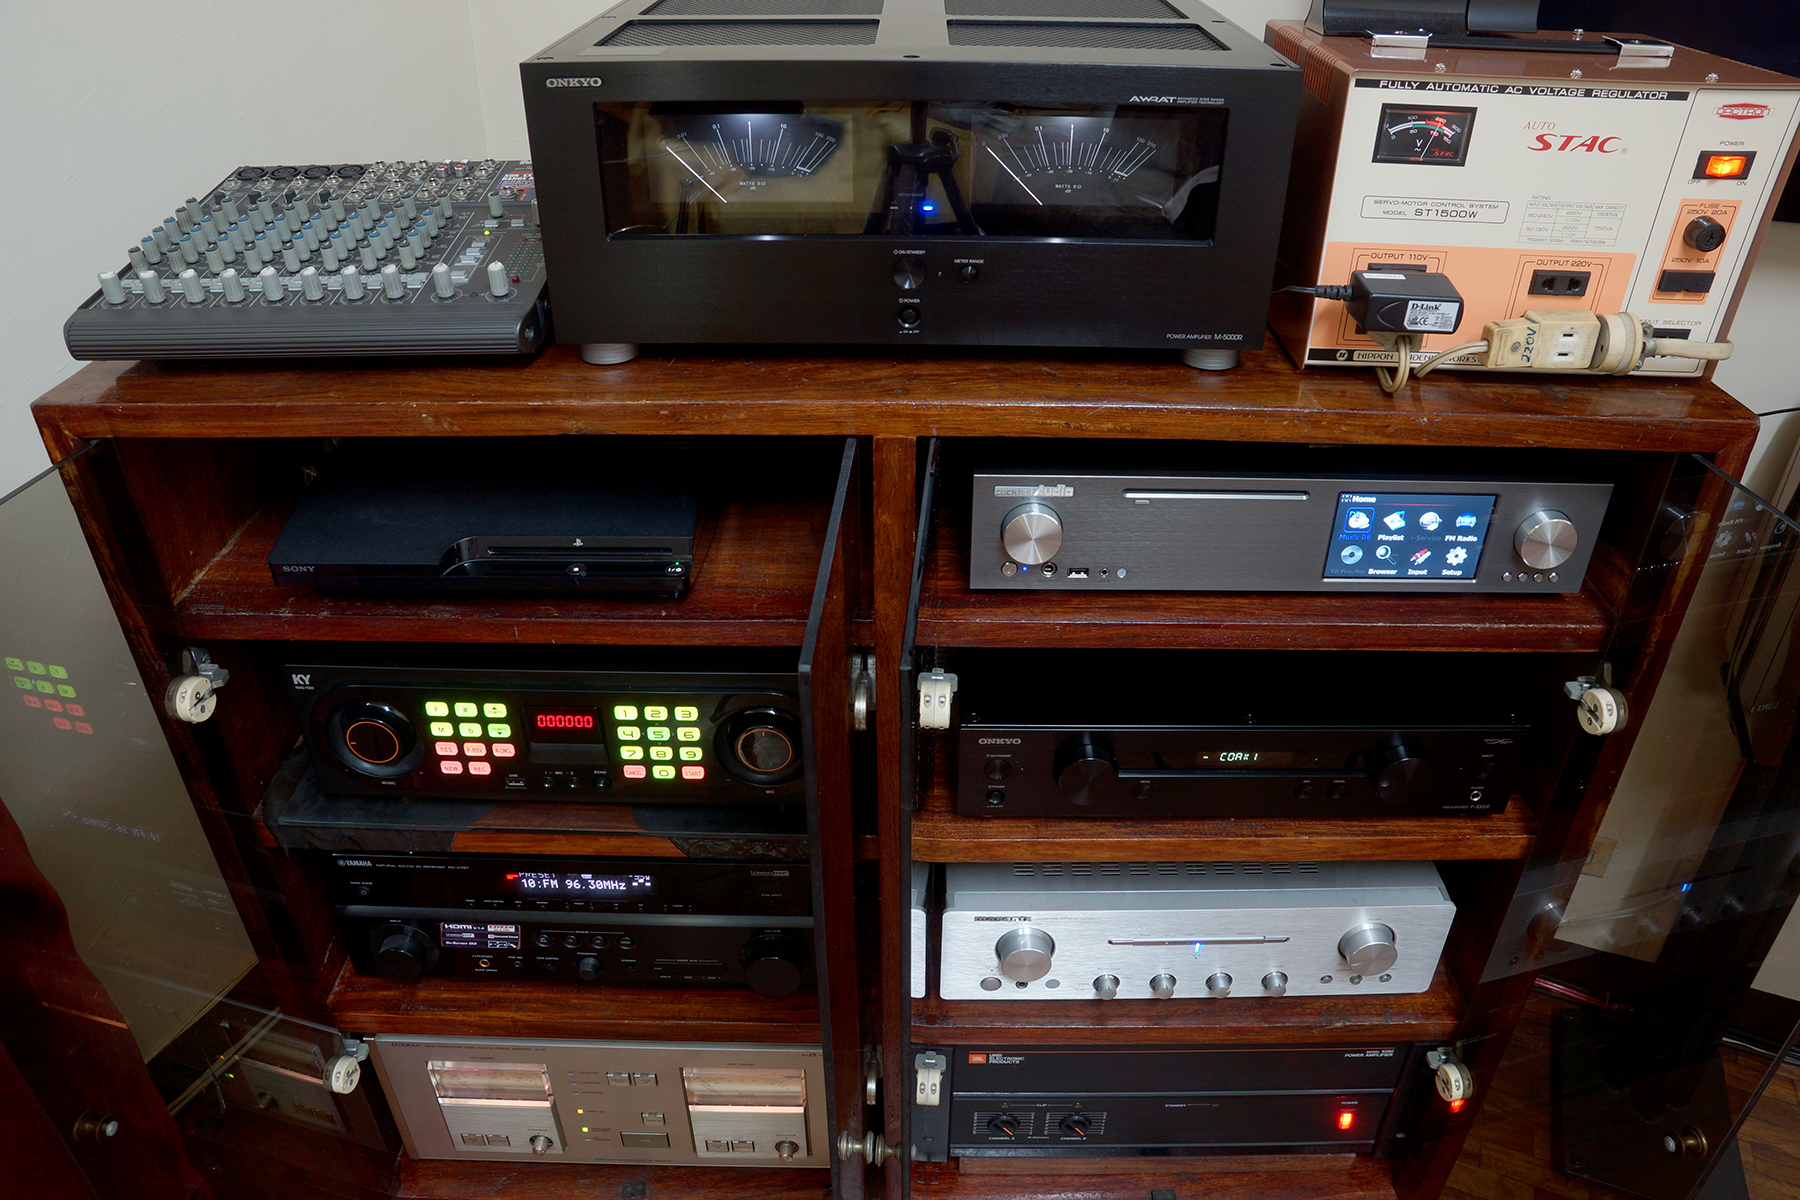 How to setup a home sound system -  Components Of Mini 6 1 Surround Sound Home Theater Audio System Karaoke Setup Completed On March 16 2015 Top Left To Right Mackie 1202 Vlz Pro Mixer